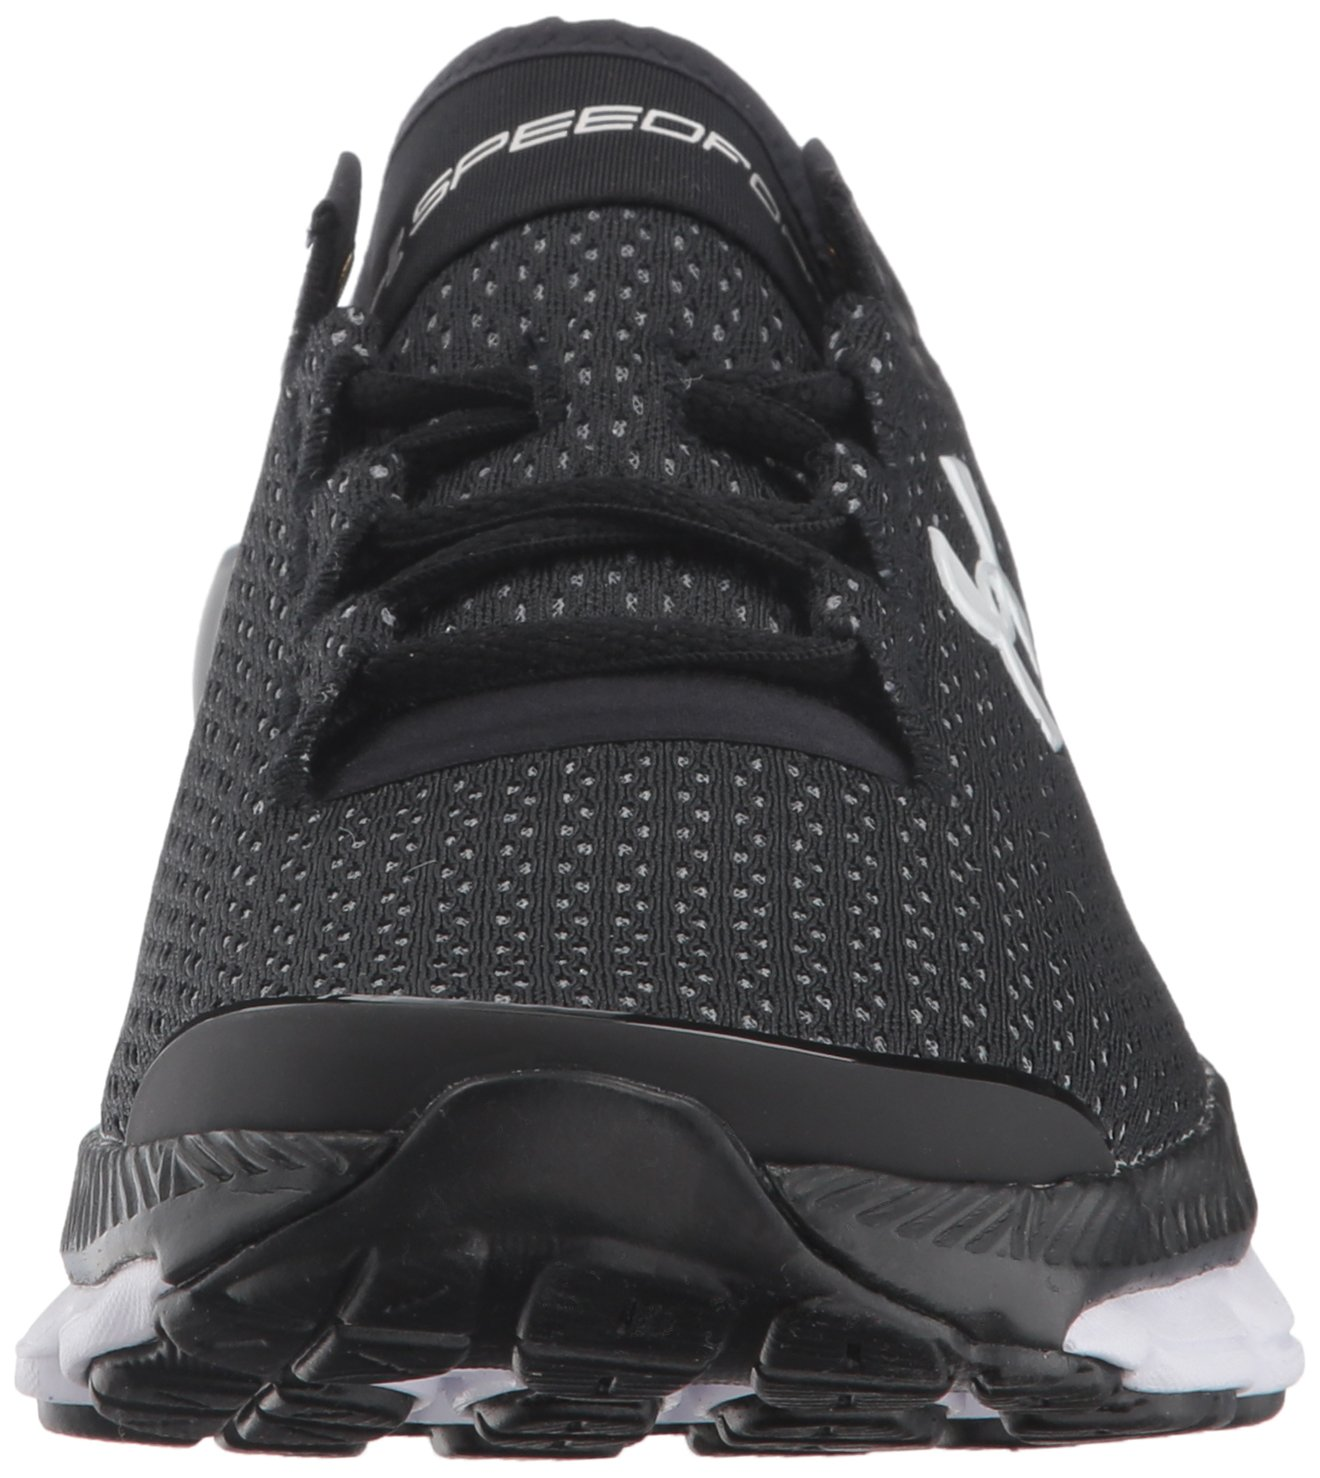 Under Armour Women's Speedform Intake 2 Running Shoe B071L7DM7Z 12 M US|Black (002)/Steel